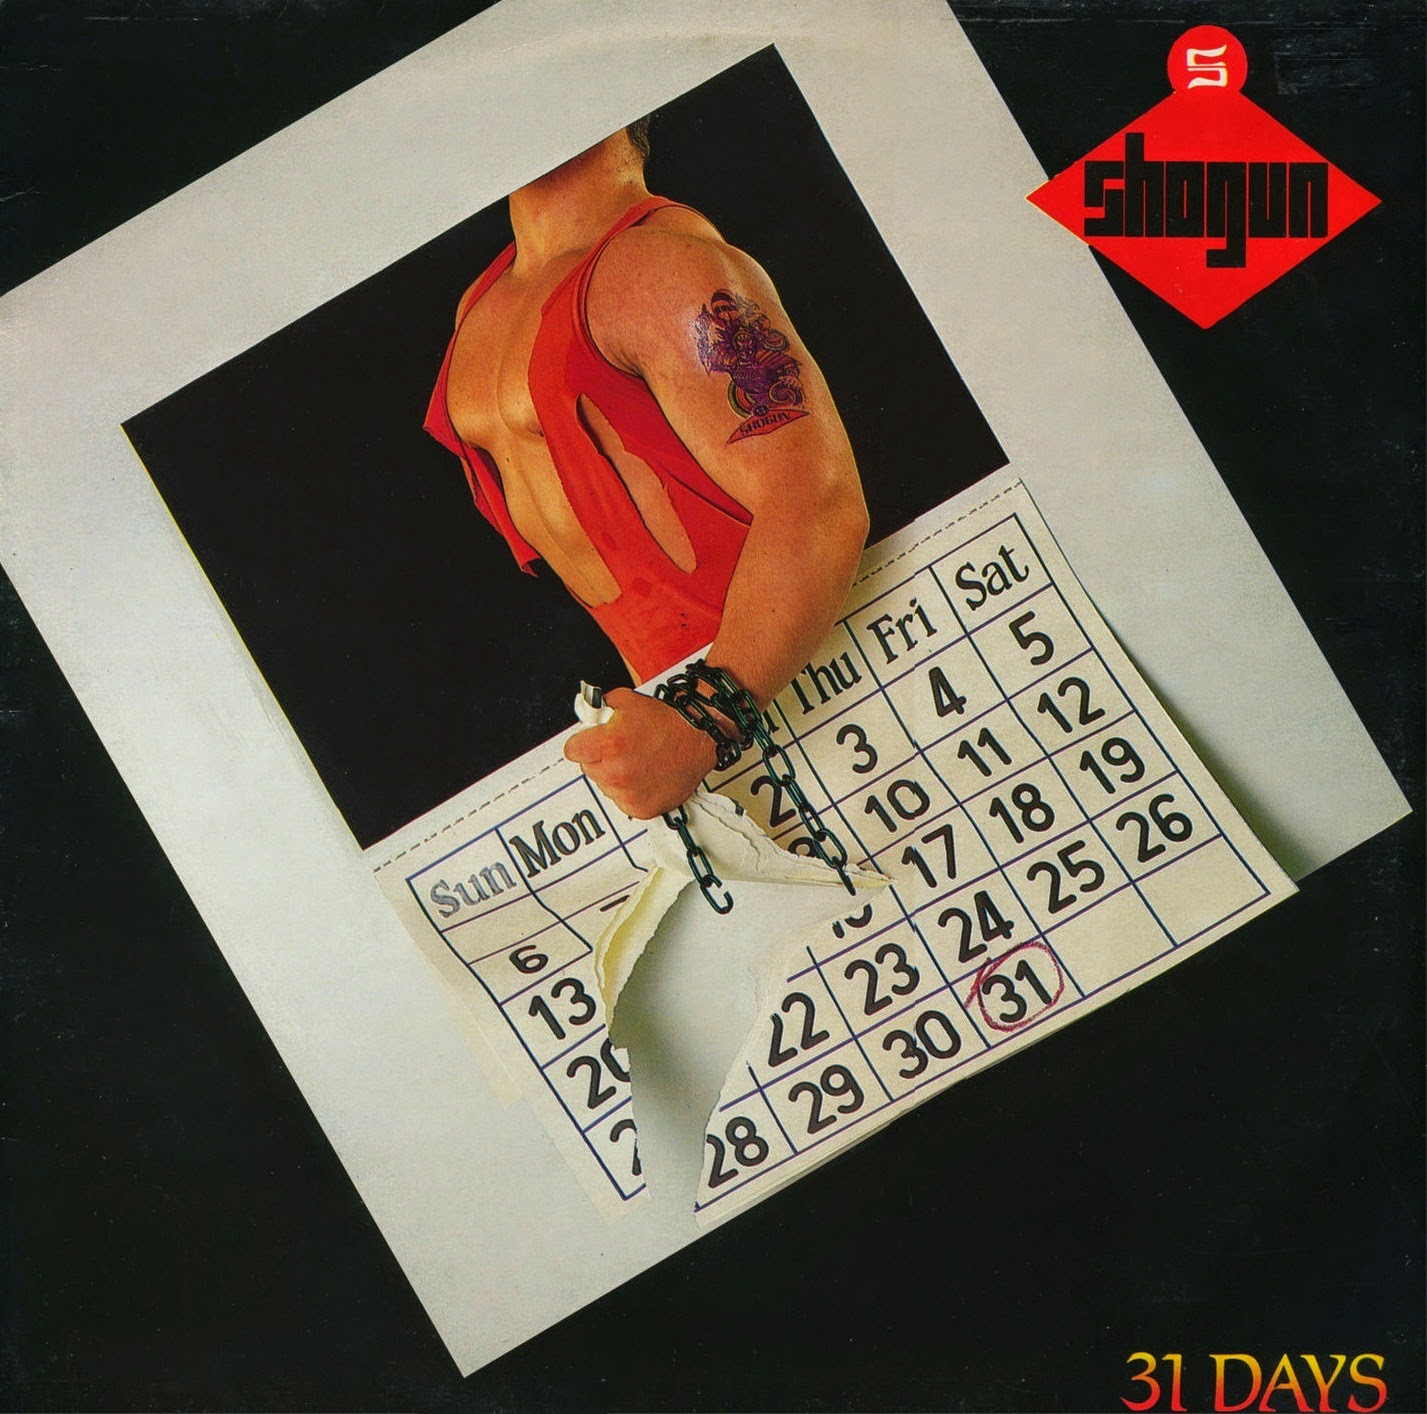 Shogun 31 days 1987 aor melodic rock